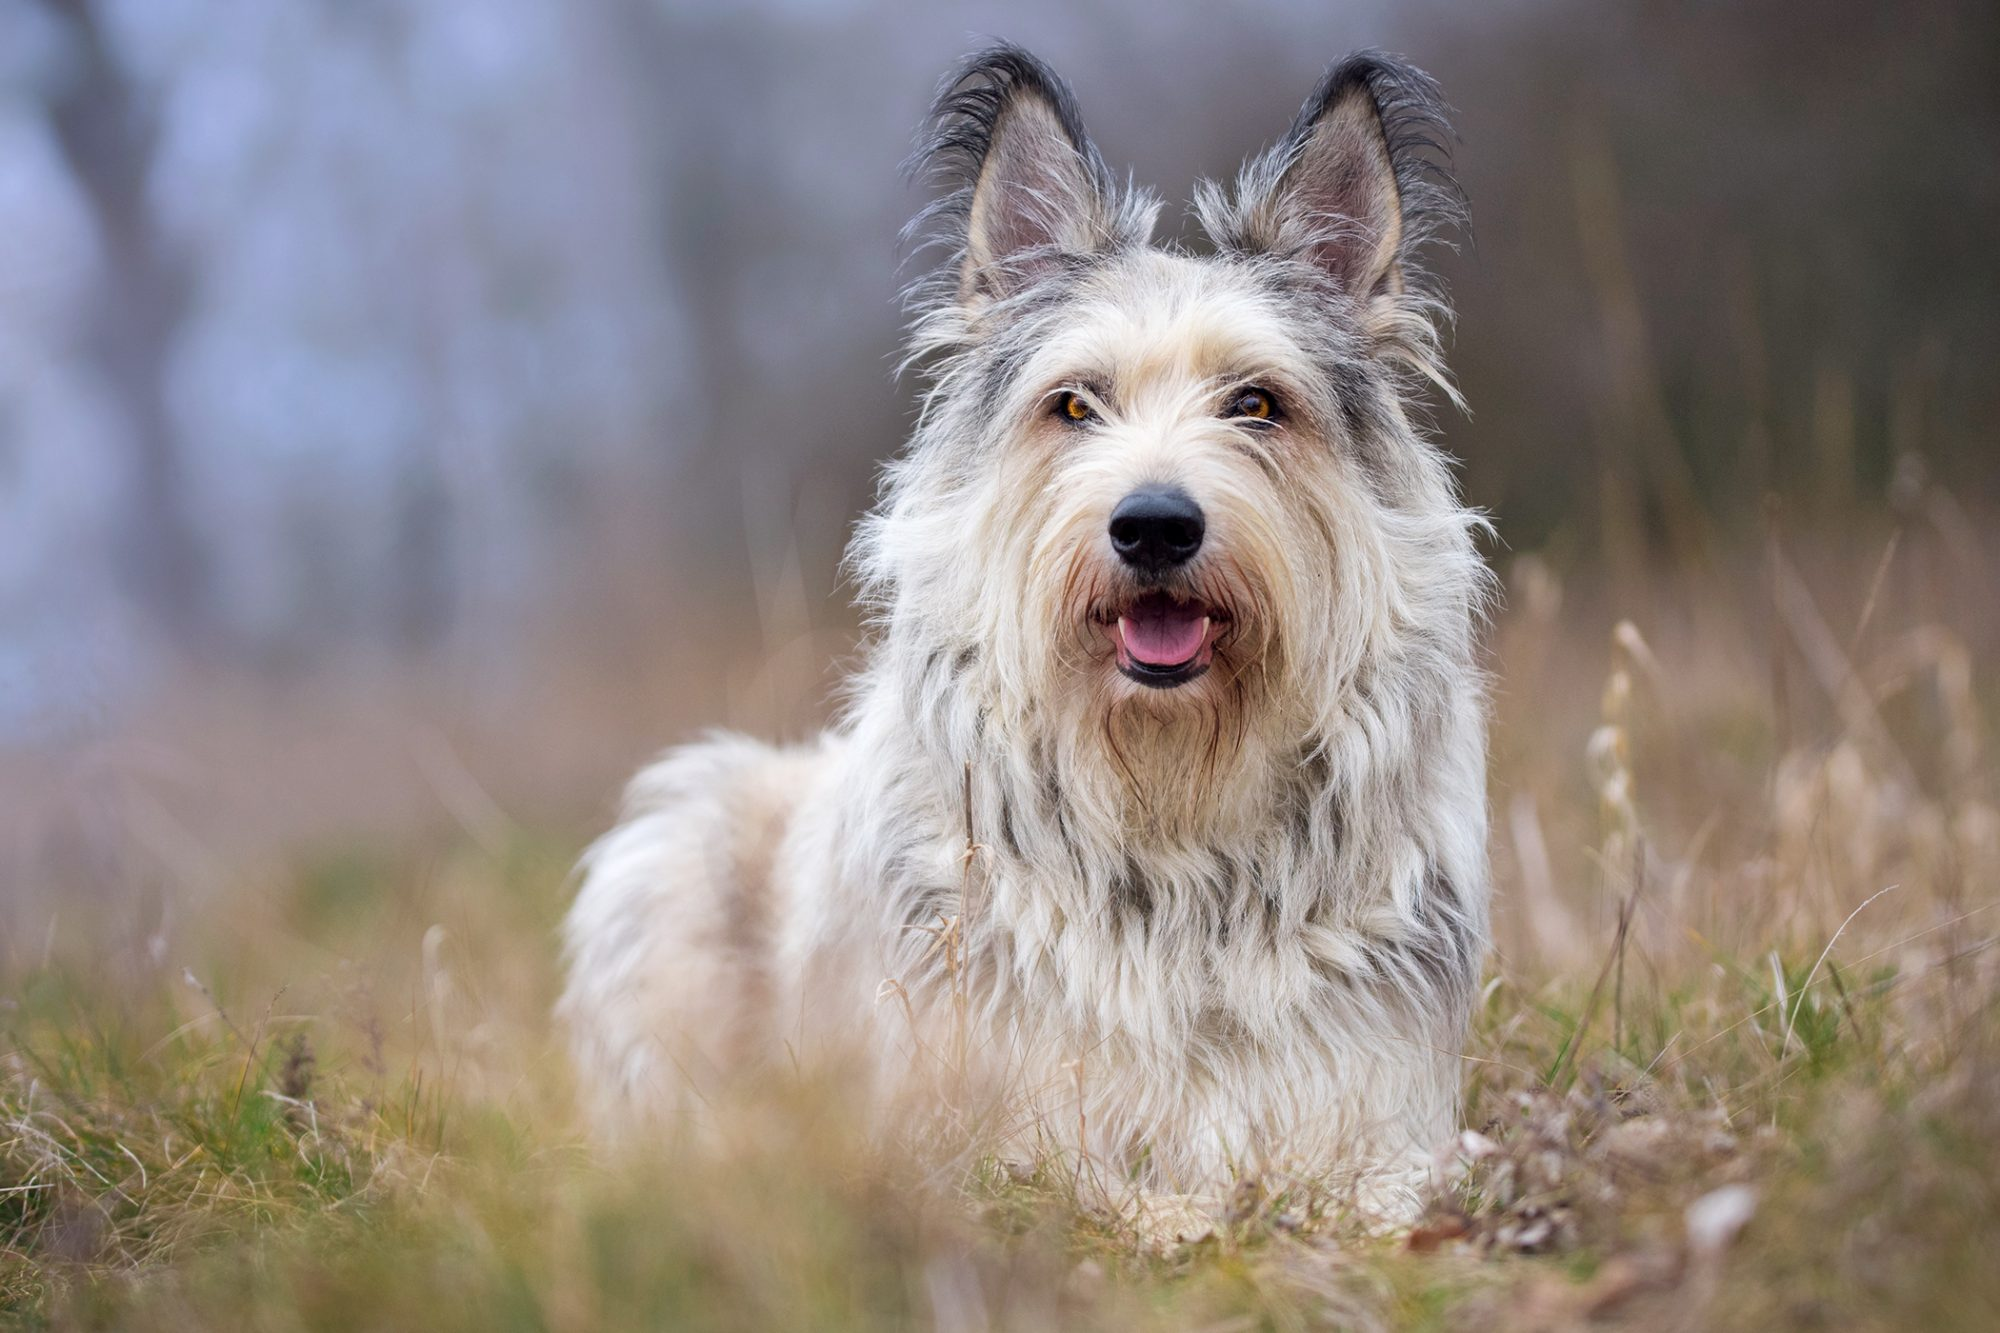 French dog breed Berger picard lying in a field